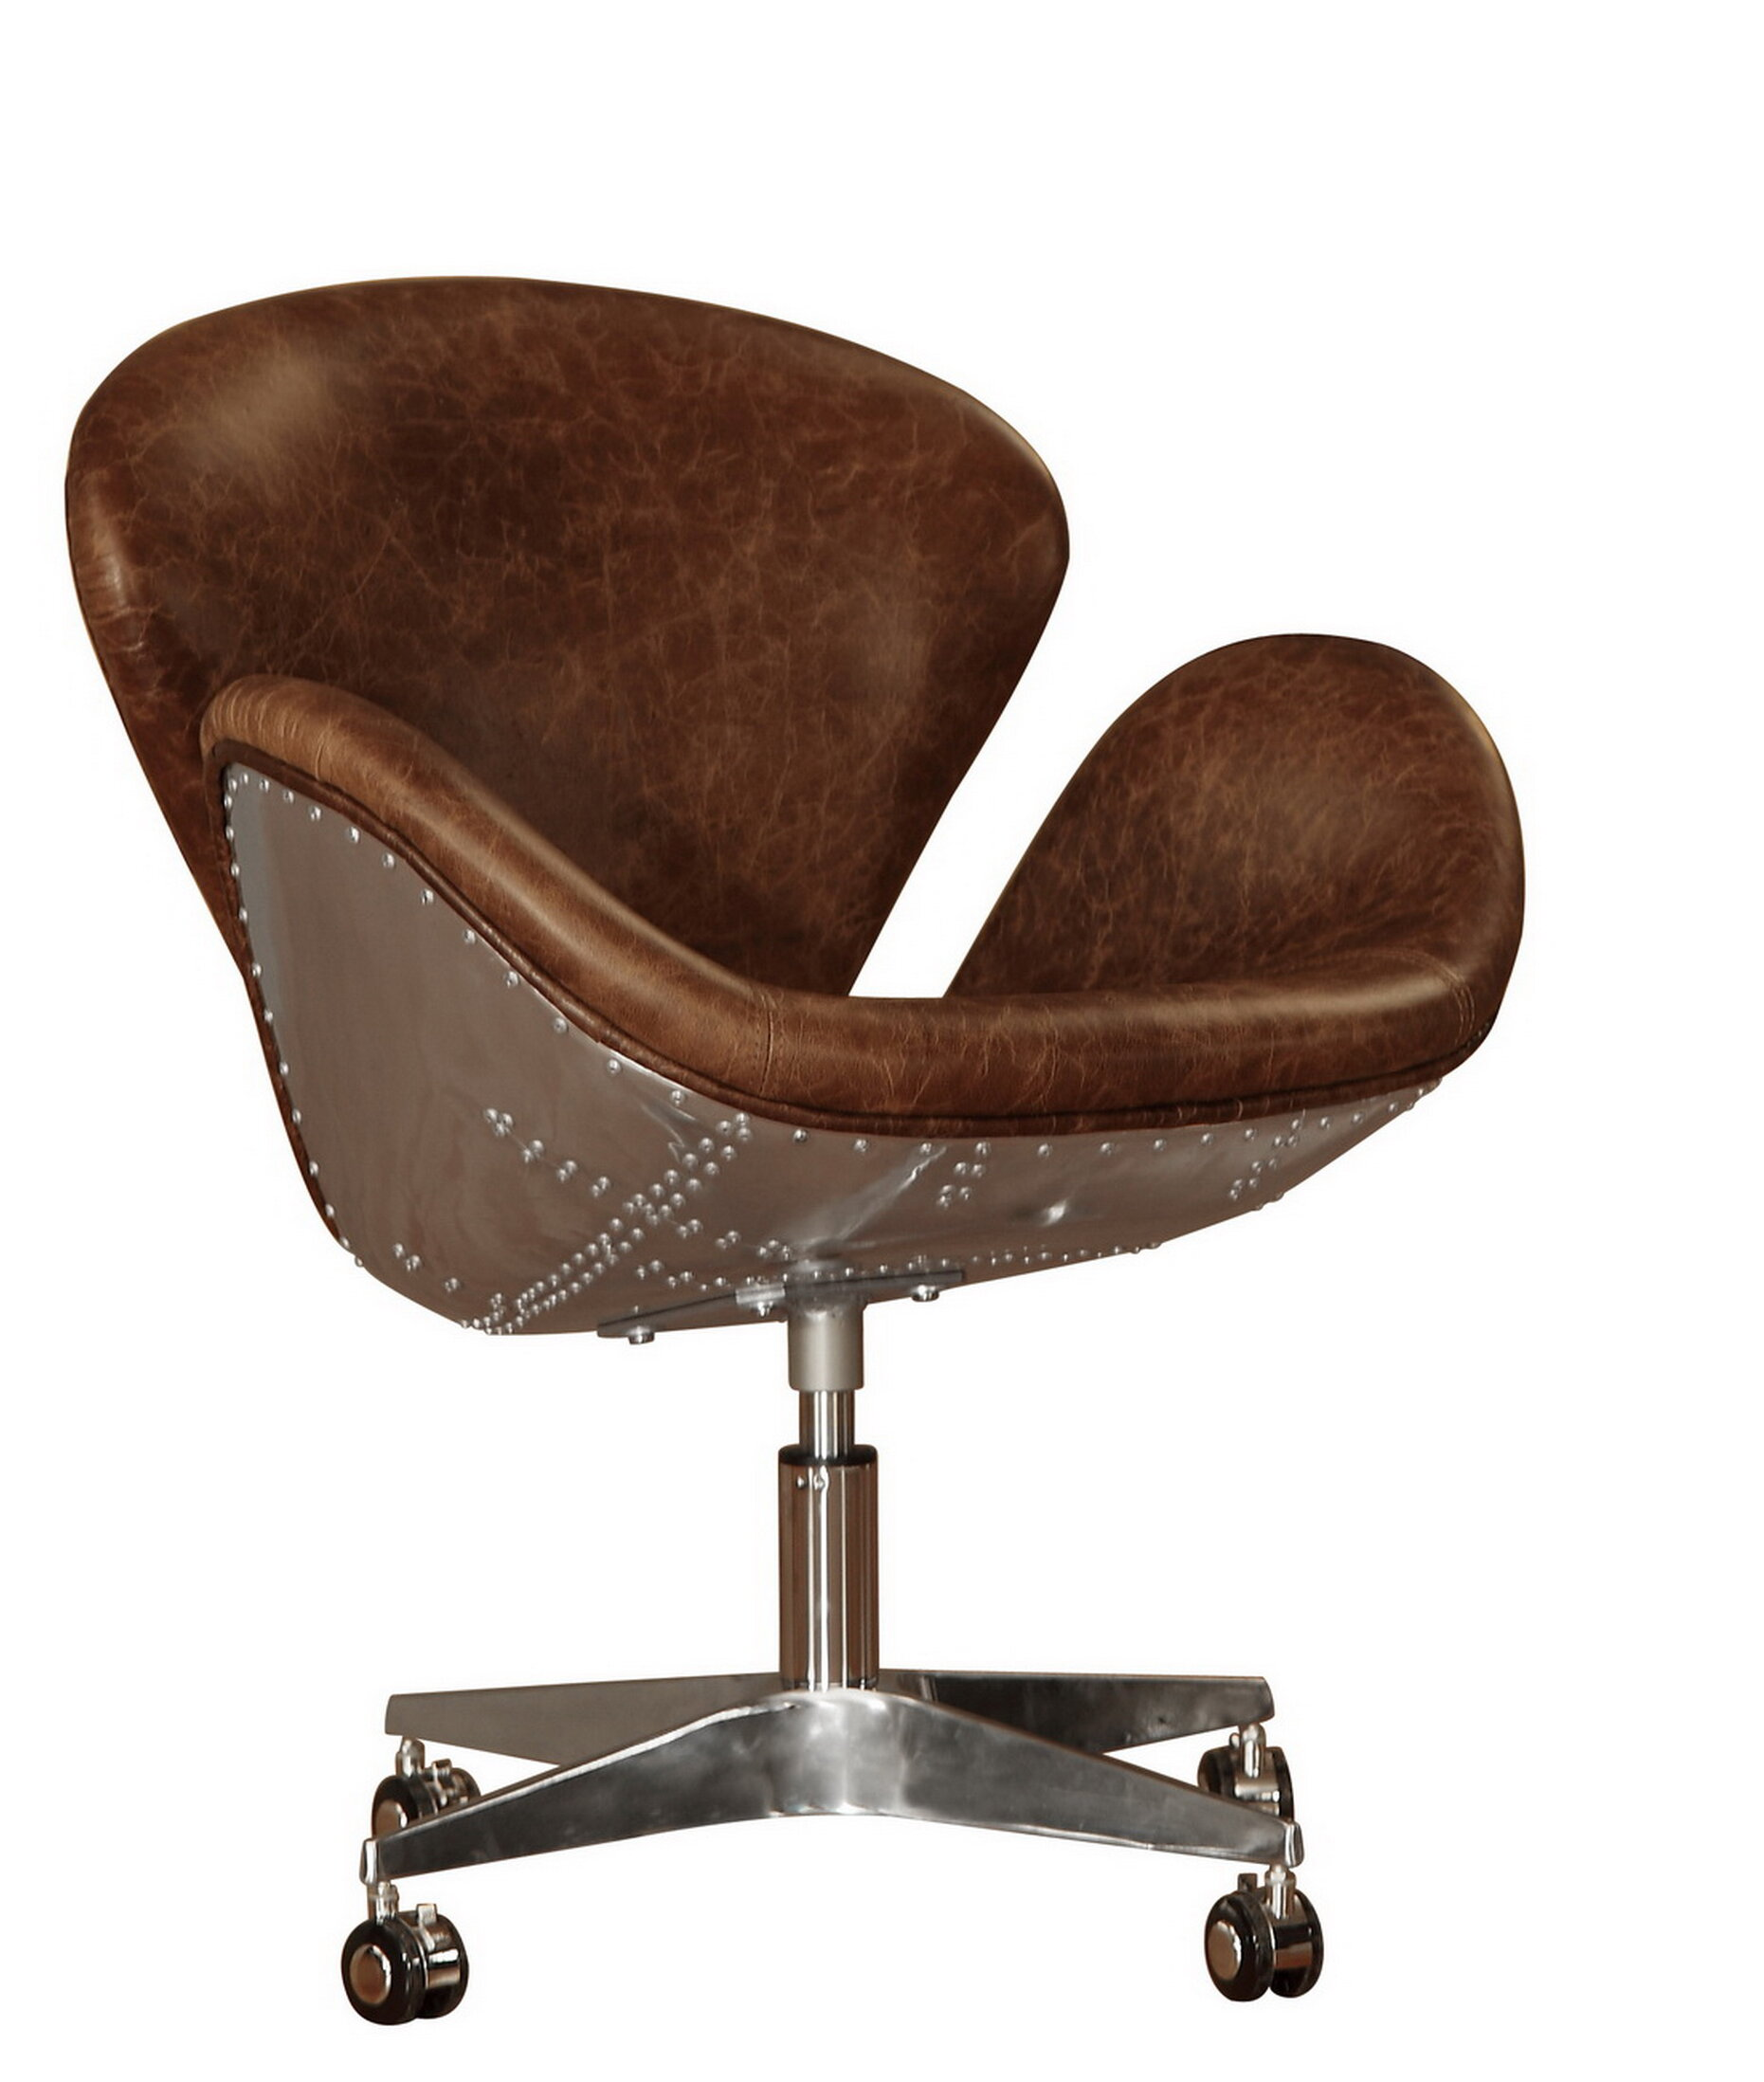 brown leather office chair. Brown Leather Office Chair